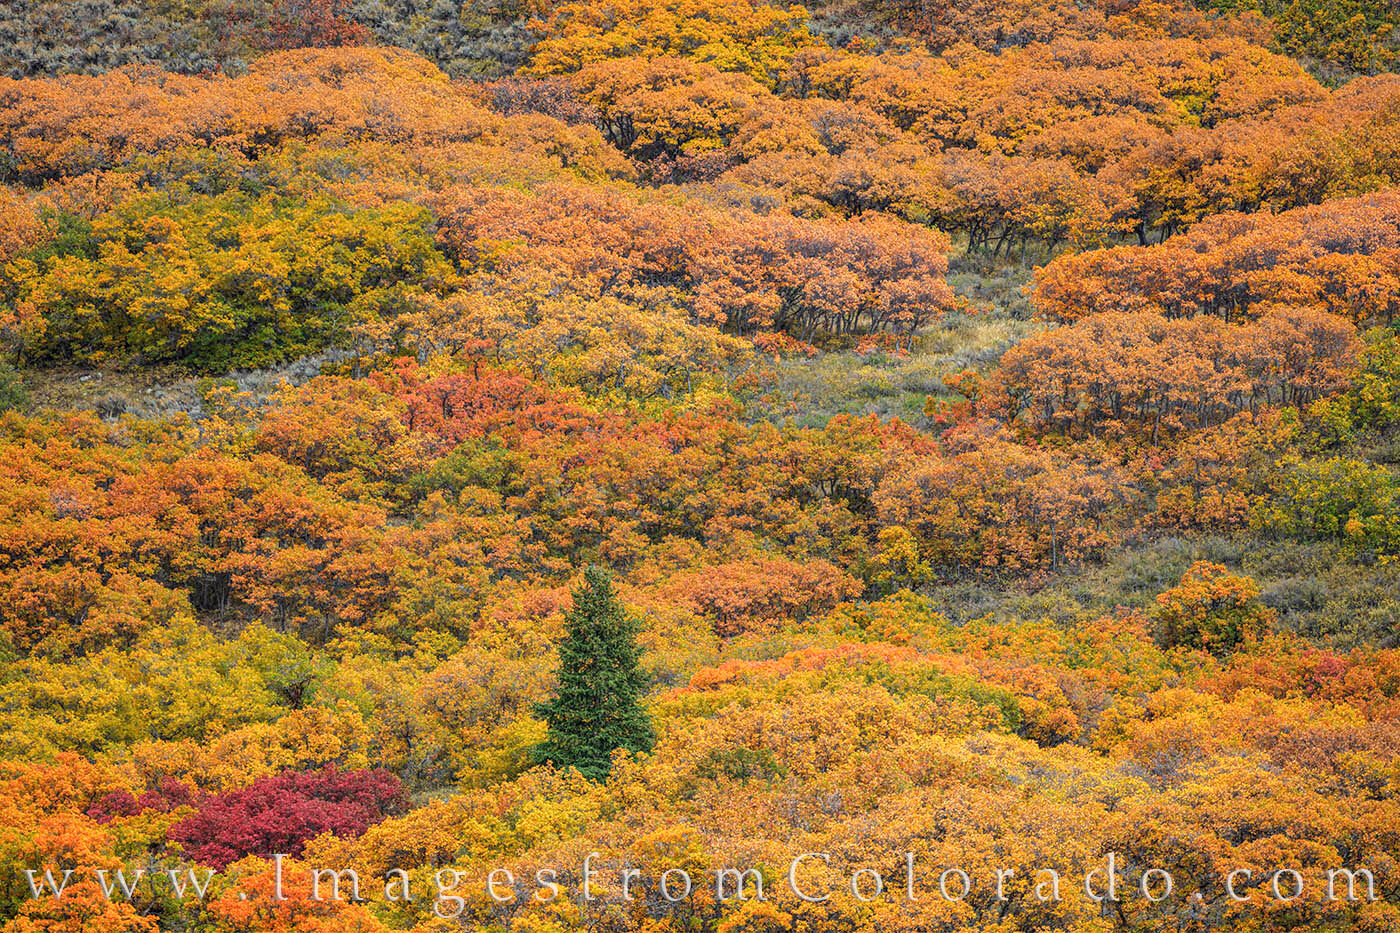 A small pine tree rests in a mountain's slope covered in orange and gold scrub brush on a cool October afternoon.